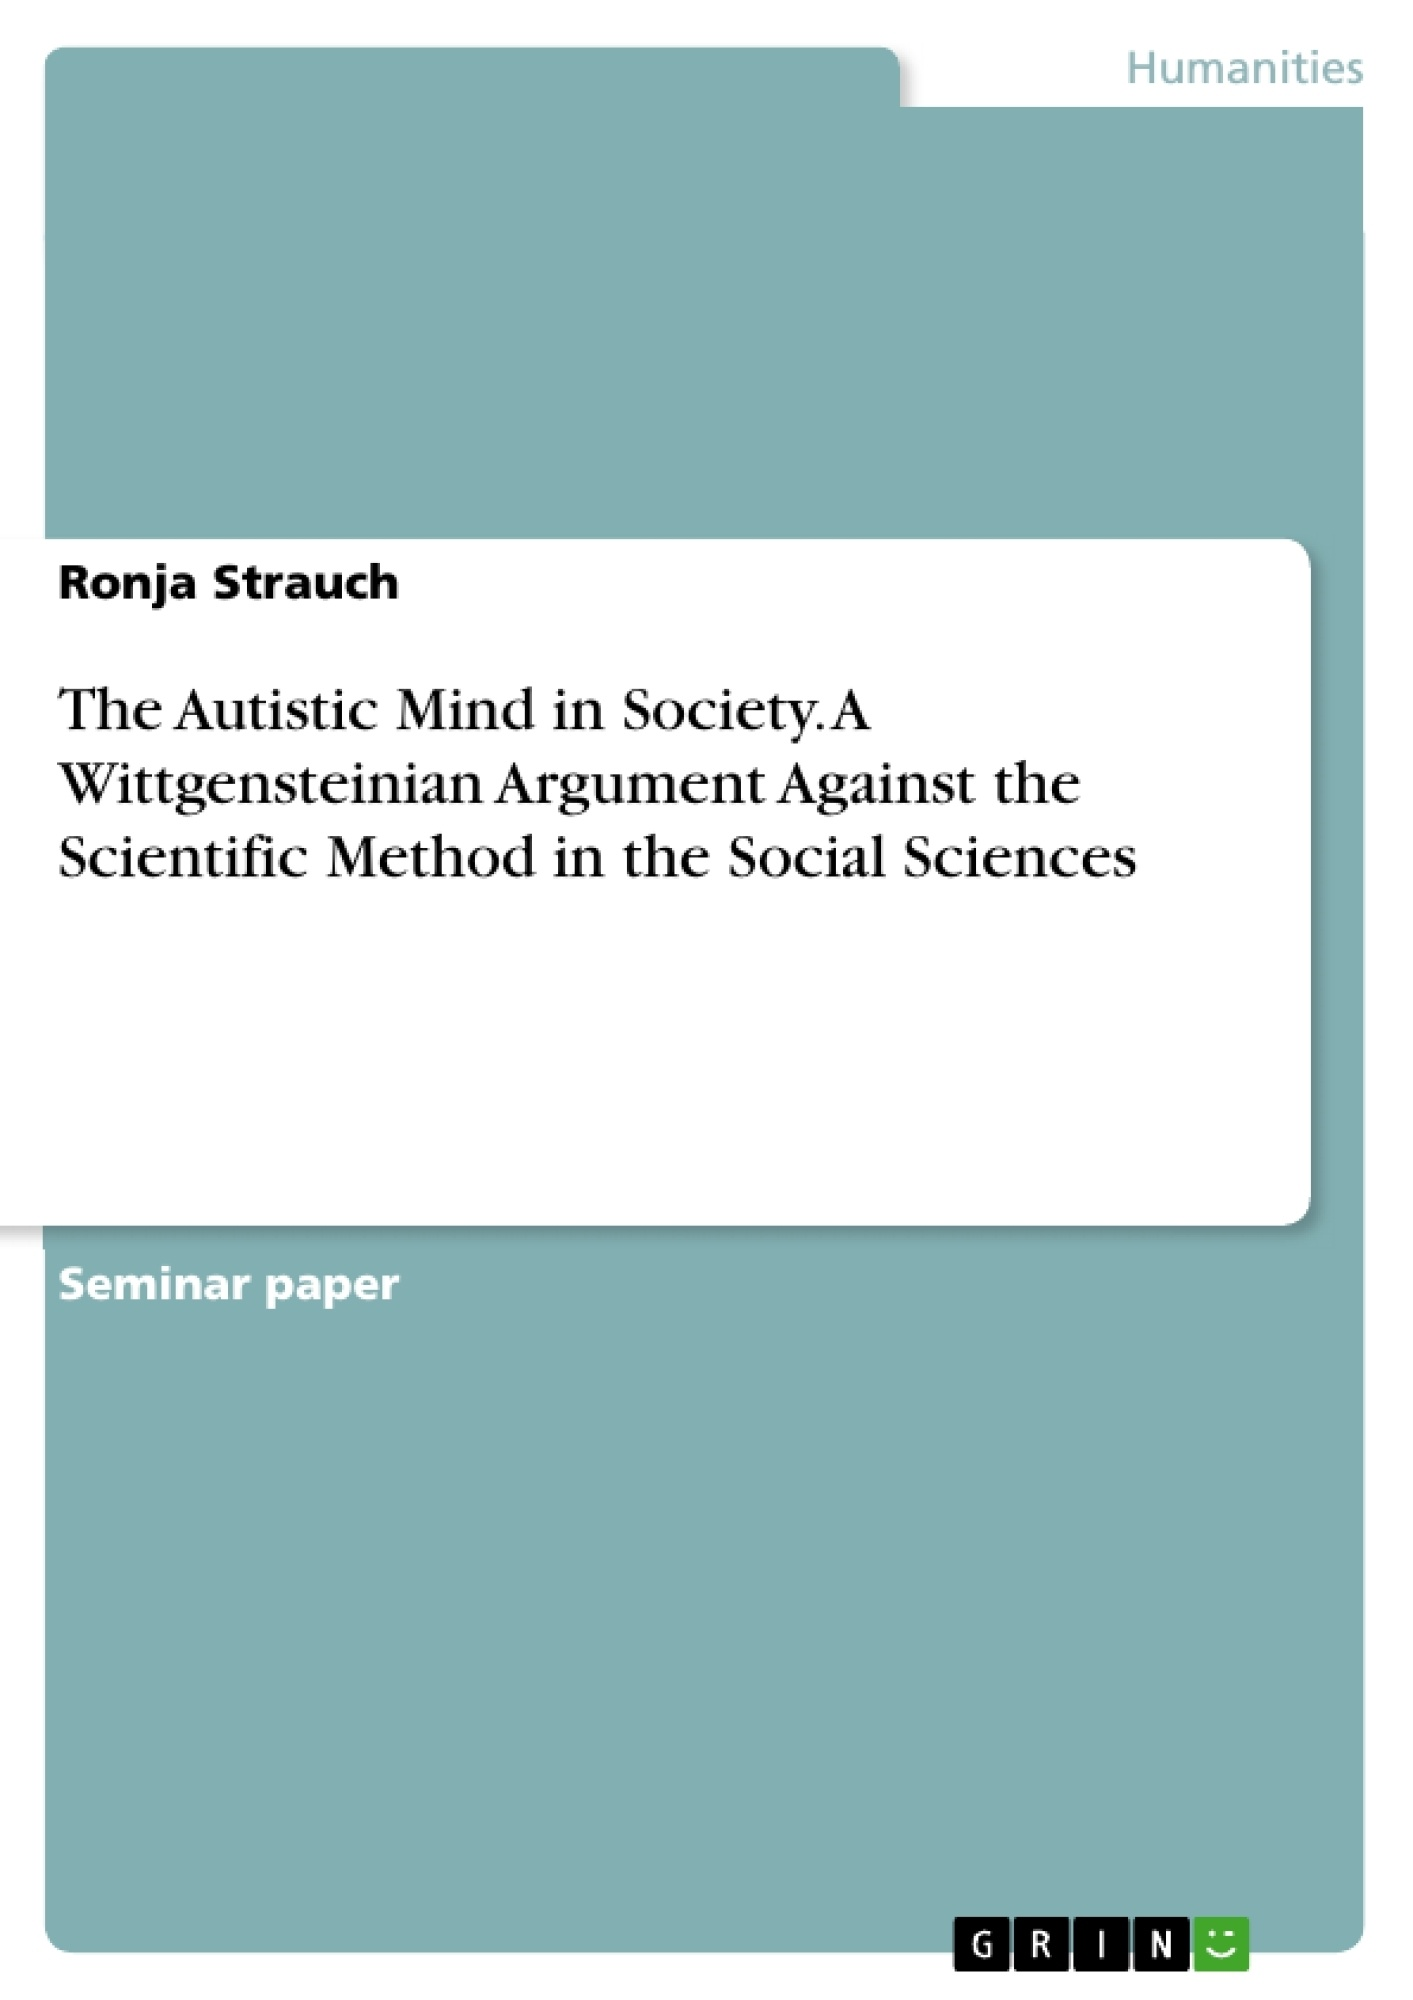 Title: The Autistic Mind in Society. A Wittgensteinian Argument Against the Scientific Method in the Social Sciences